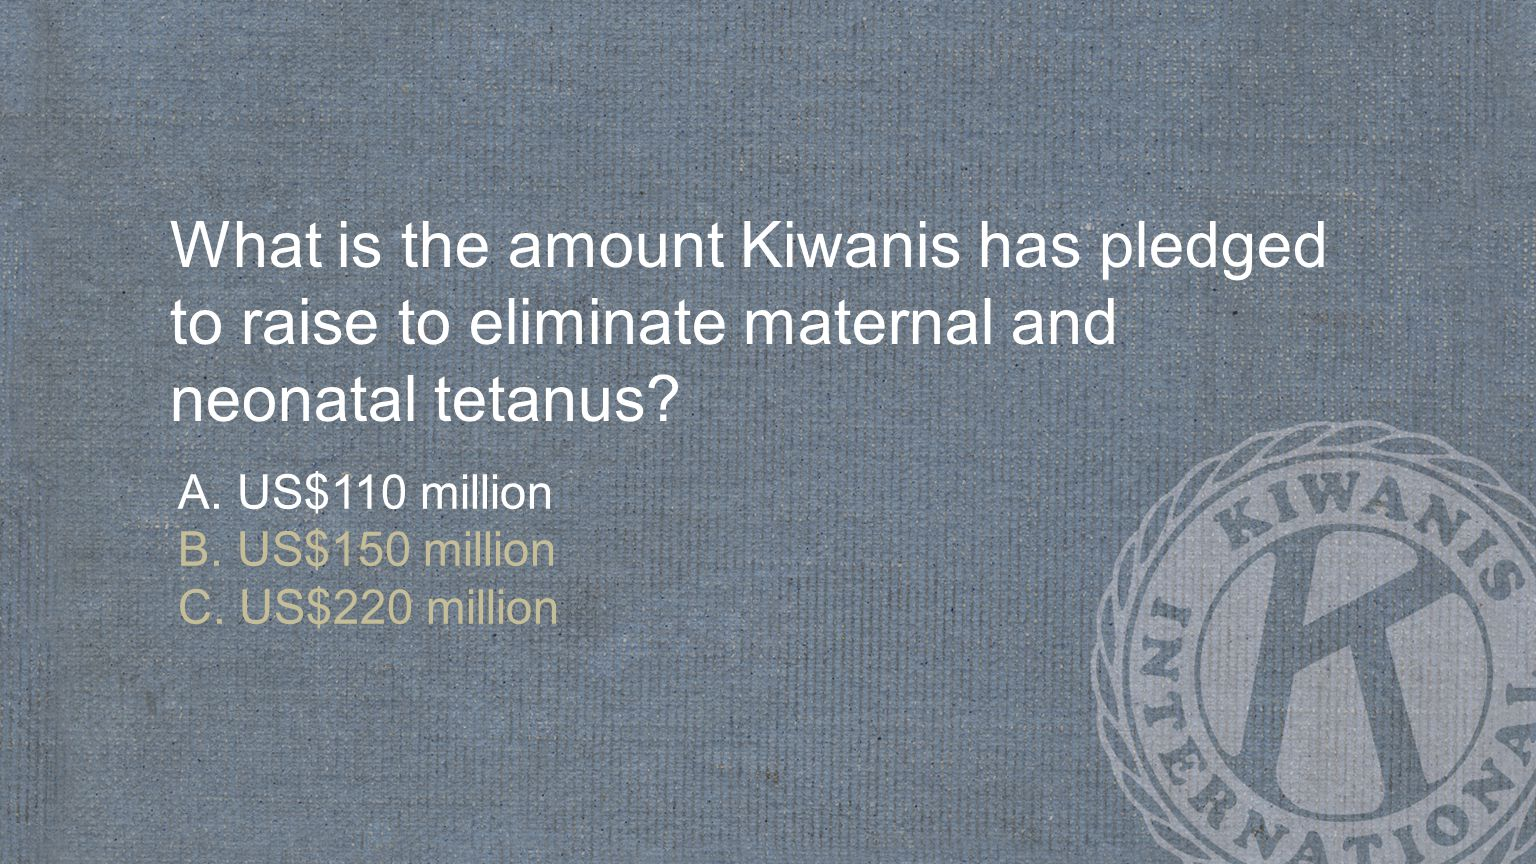 What is the amount Kiwanis has pledged to raise to eliminate maternal and neonatal tetanus